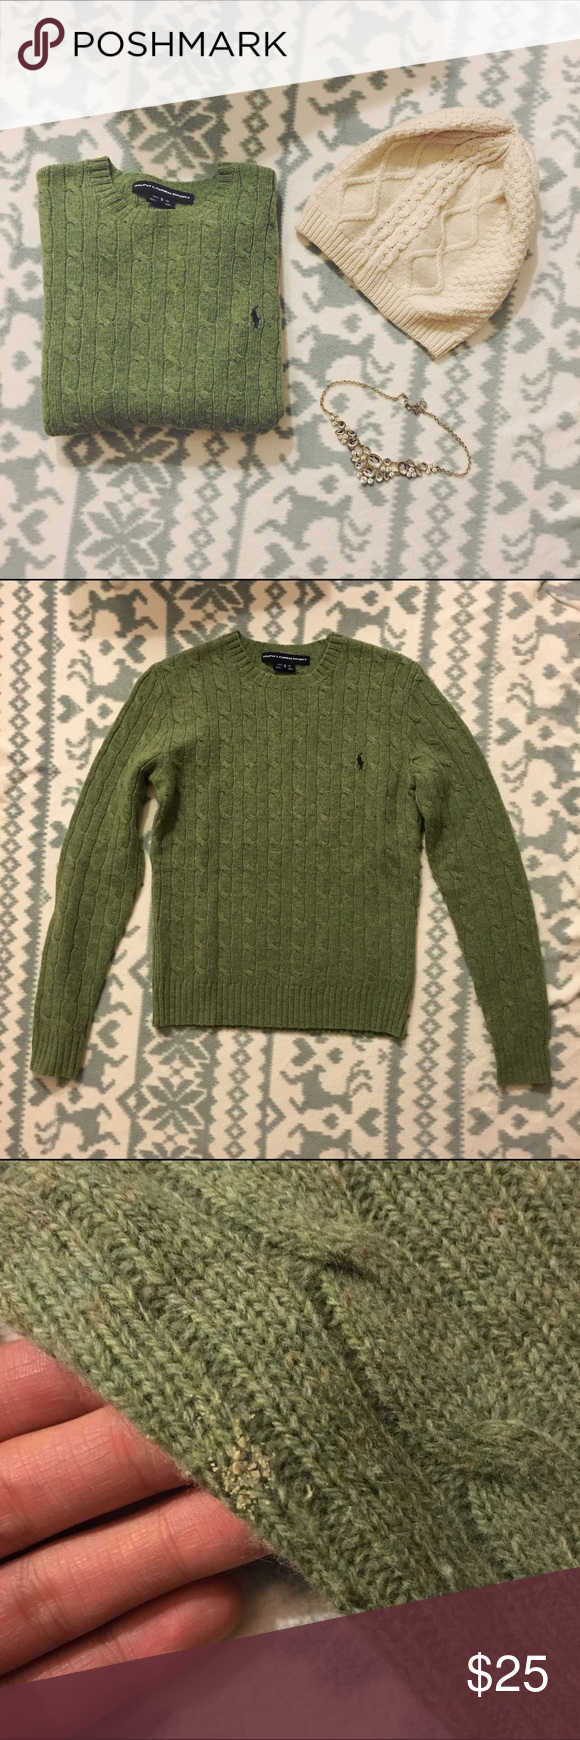 RL SPORT Green 100% Lambs Wool Cable Knit Sweater Ralph Lauren Sport Green Sweater. 100% Lambswool. In good condition. Light pilling throughout. I found two holes. One near the front collar (not pictured) and a larger one on the back of the left sleeve (photo #4). Light stain on the lower left sleeve. I think it should be able to come out with some care. 💗💗 Super cute for the fall and winter!! 💗💗 will consider all offers. Ralph Lauren Sweaters Crew & Scoop Necks